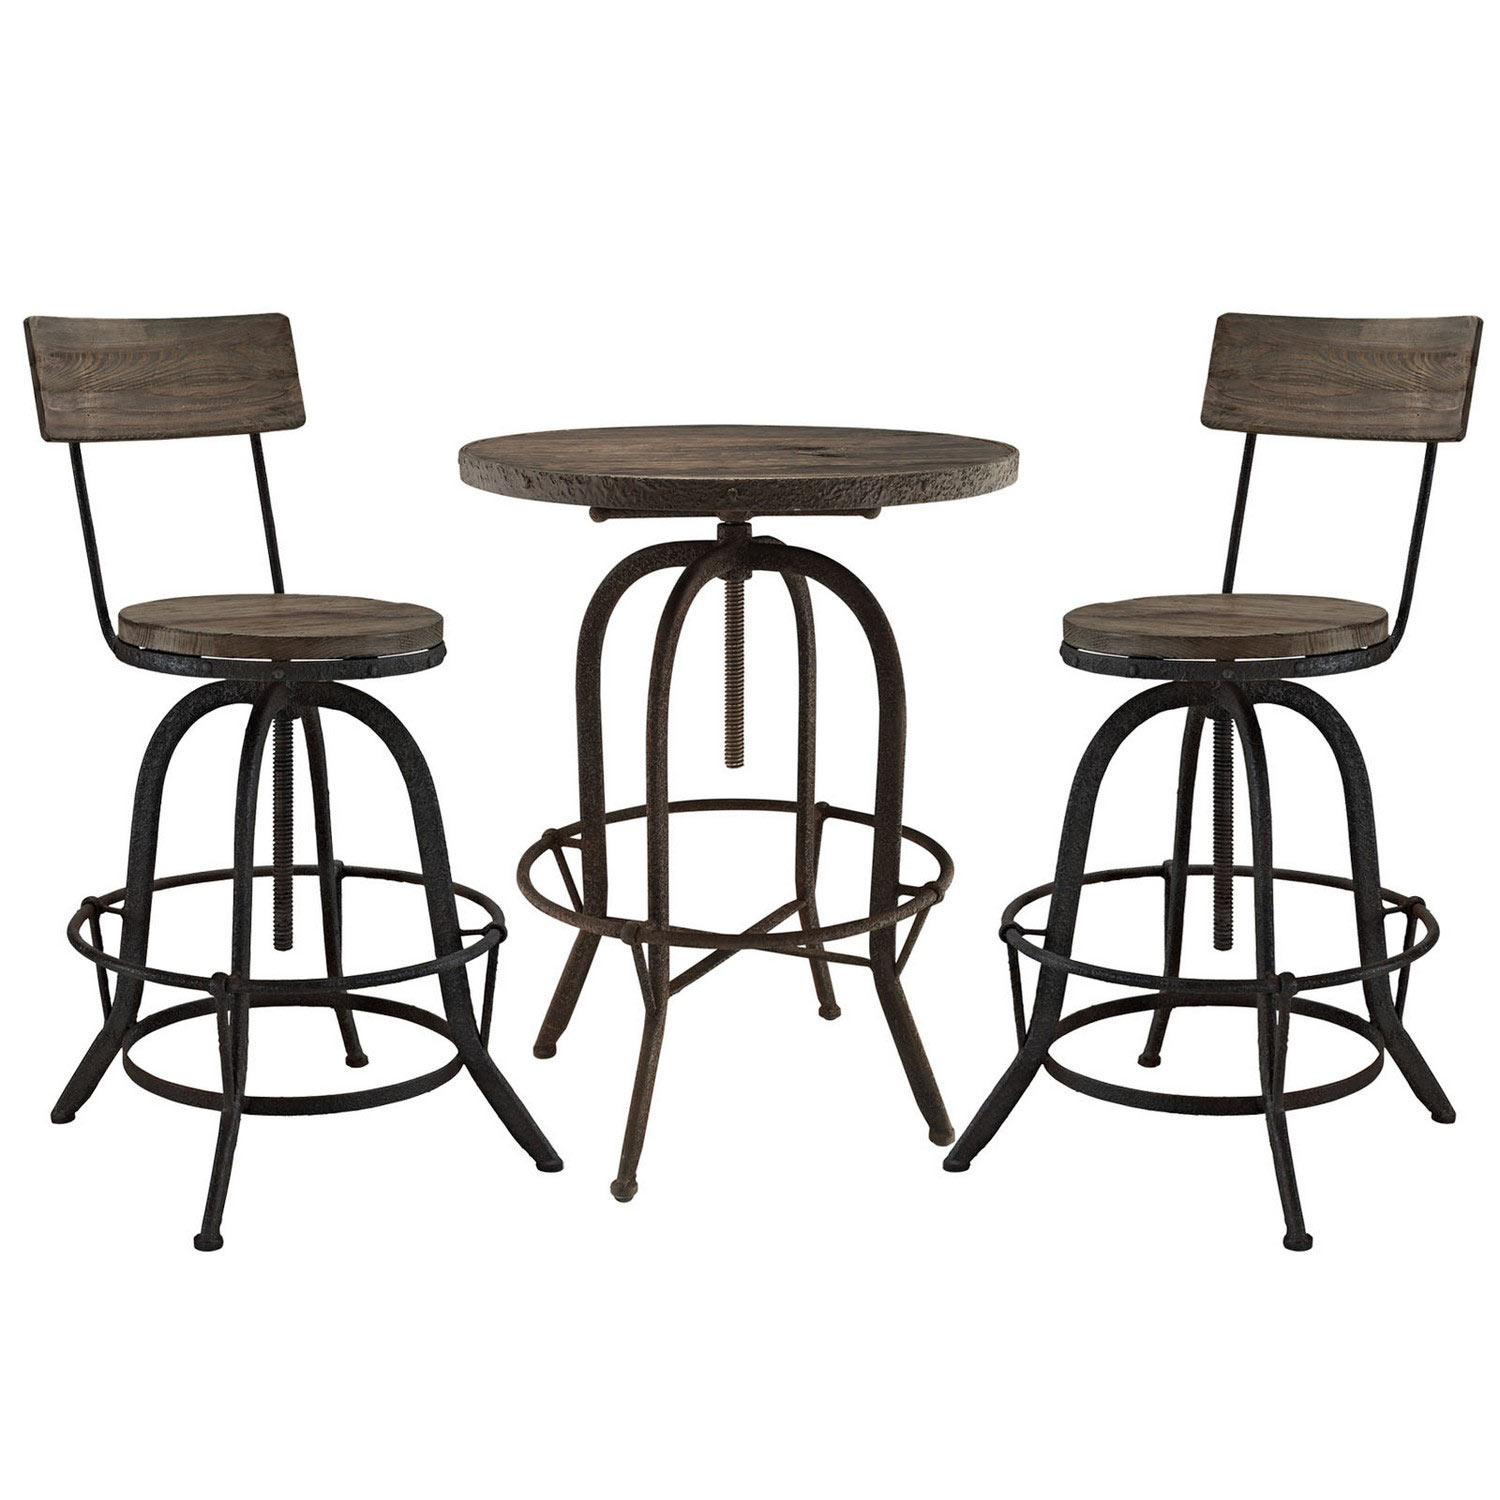 Modway Gather 5 Piece Dining Set with Bar Stool - Brown